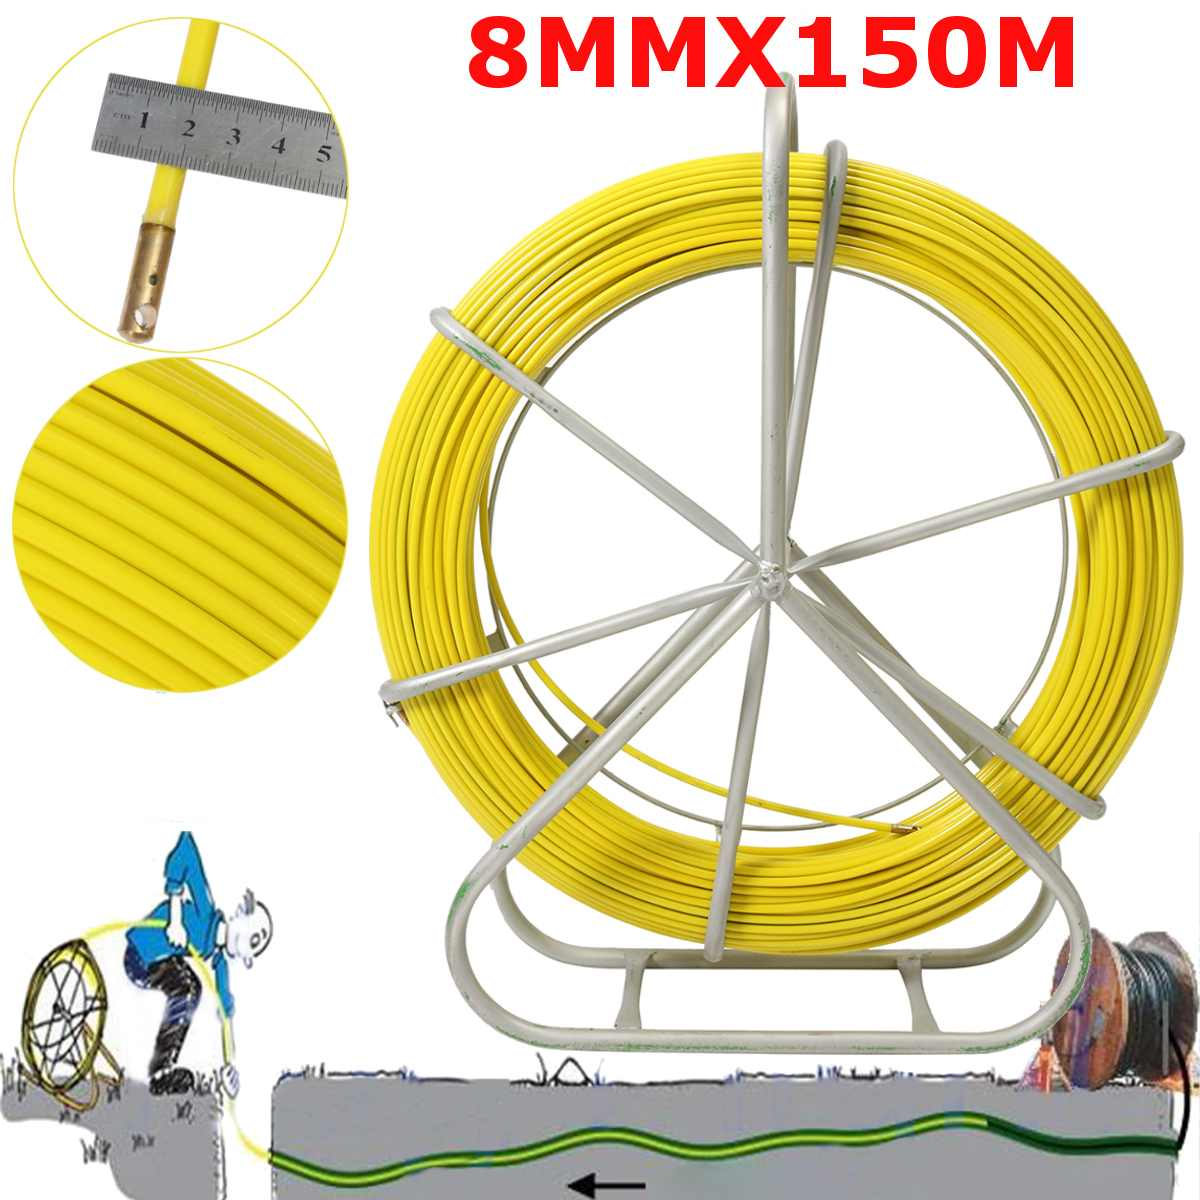 8mm 150M Fiberglass Wire Cable Running Rod Snake Fish Rodder Puller Flexi Lead Electric Fiberglass Wire Cable Running Rod Puller8mm 150M Fiberglass Wire Cable Running Rod Snake Fish Rodder Puller Flexi Lead Electric Fiberglass Wire Cable Running Rod Puller